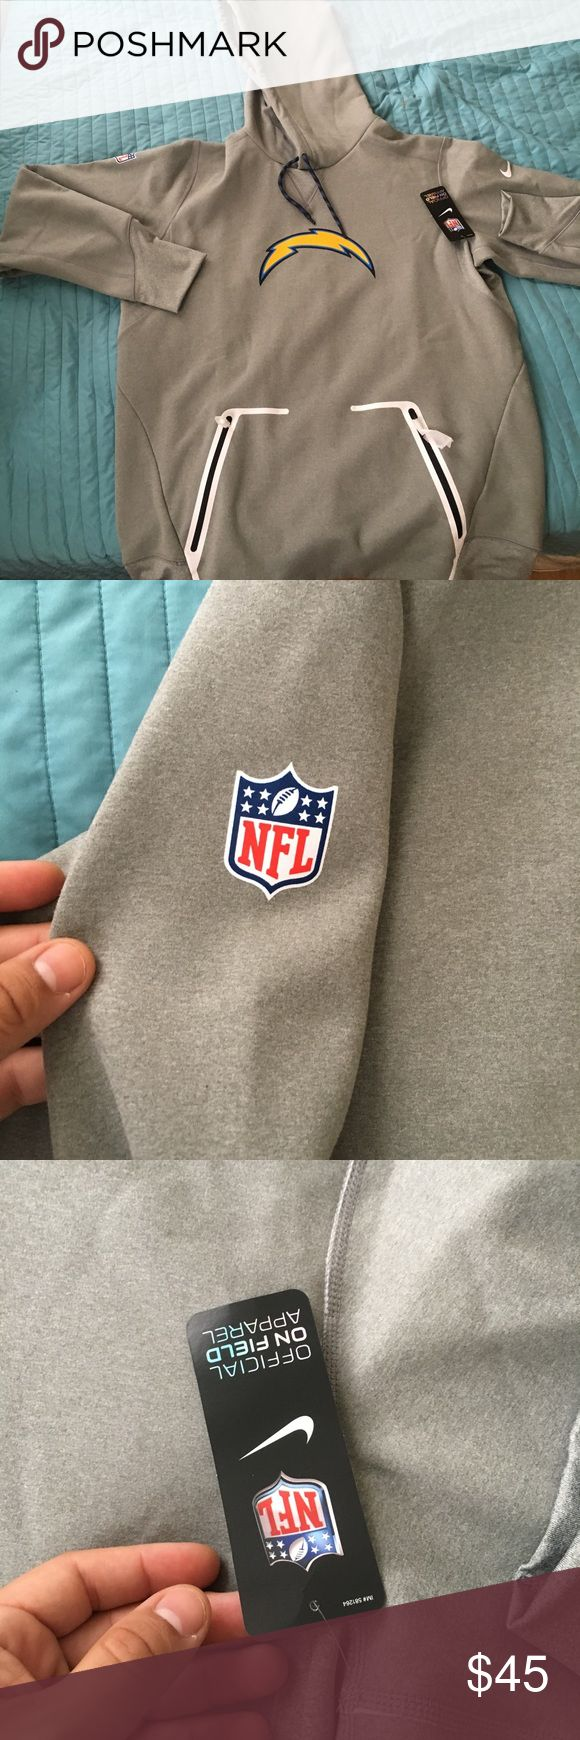 Los Angeles Chargers Football NFL Nike Tech Fleece Los Angeles Chargers Football NFL  Nike Tech Fleece  Size Large  Brand New With Tags.  Nike Tech Fleece Hoodie.  Retail 125$.  Perfect for the football season. Great Quality perfect for a Christmas Gift.  Ignore: Adidas Nike Jordan Jumpman off White Burberry three stripes retro banned royal hypebeast supreme sports football basketball baseball dodgers Yankees Green Bay Giants patriots bills browns bears astros chargers raiders Rams angels…